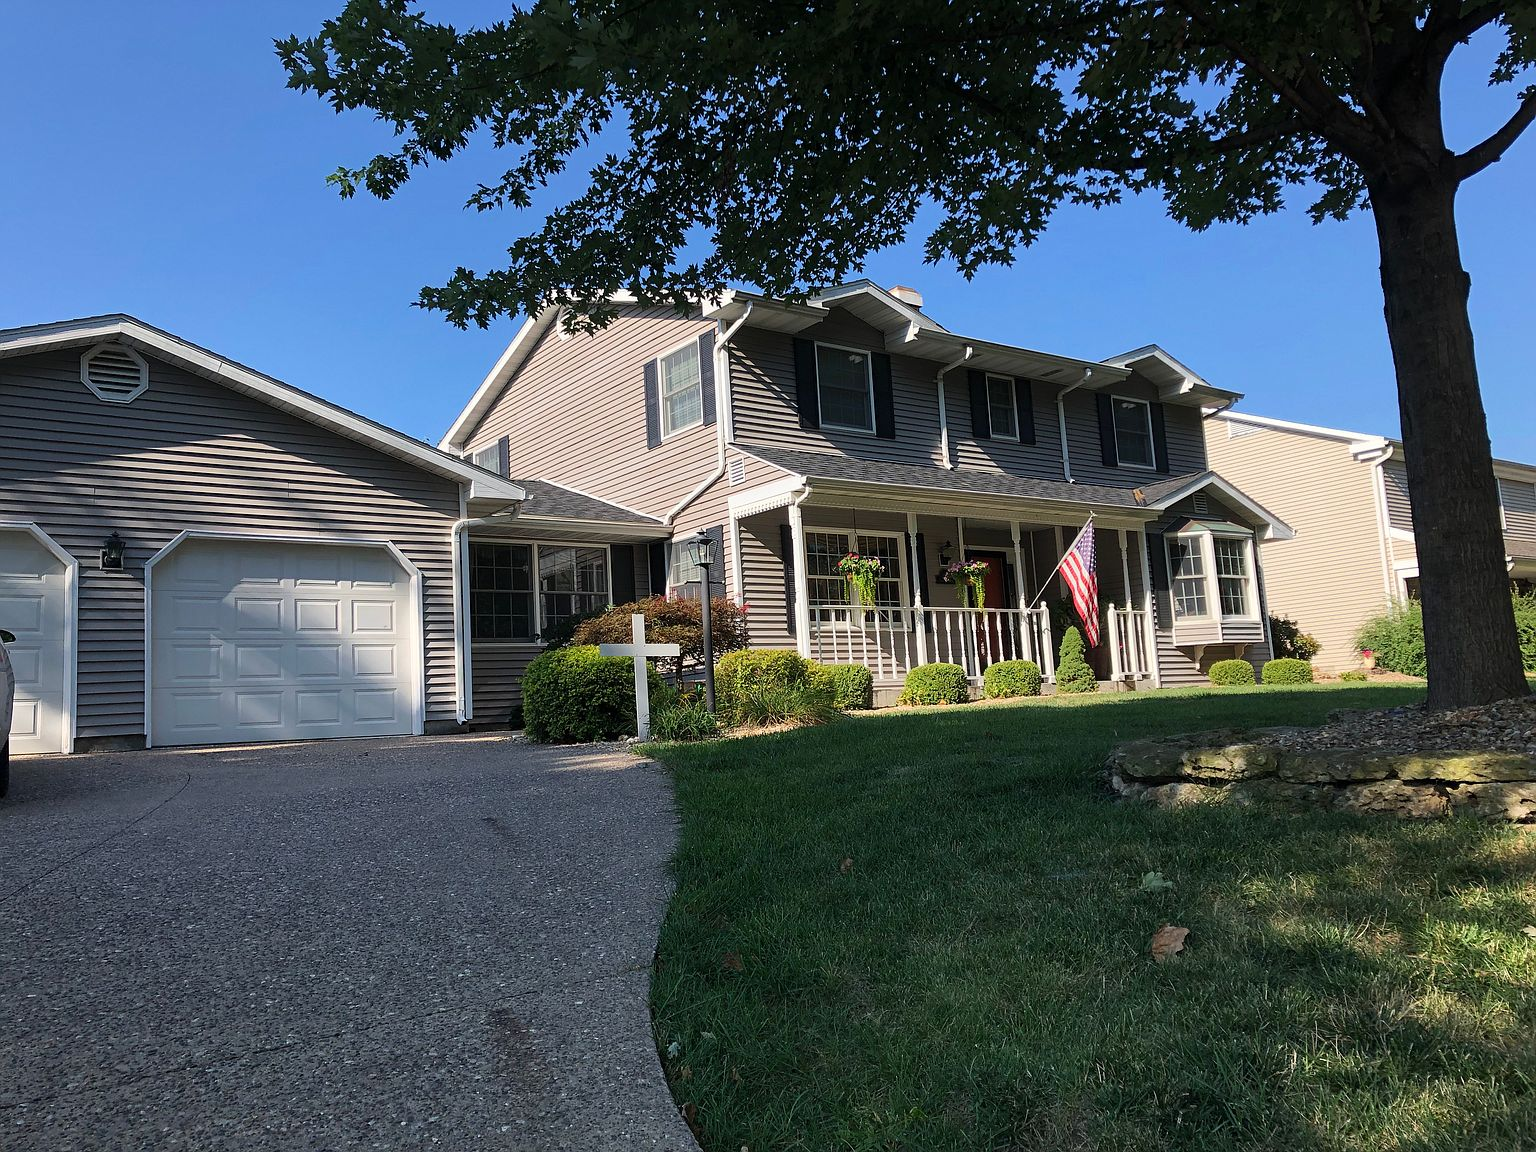 2819 Southfield Dr Quincy Il 62301 Mls 199603 Zillow